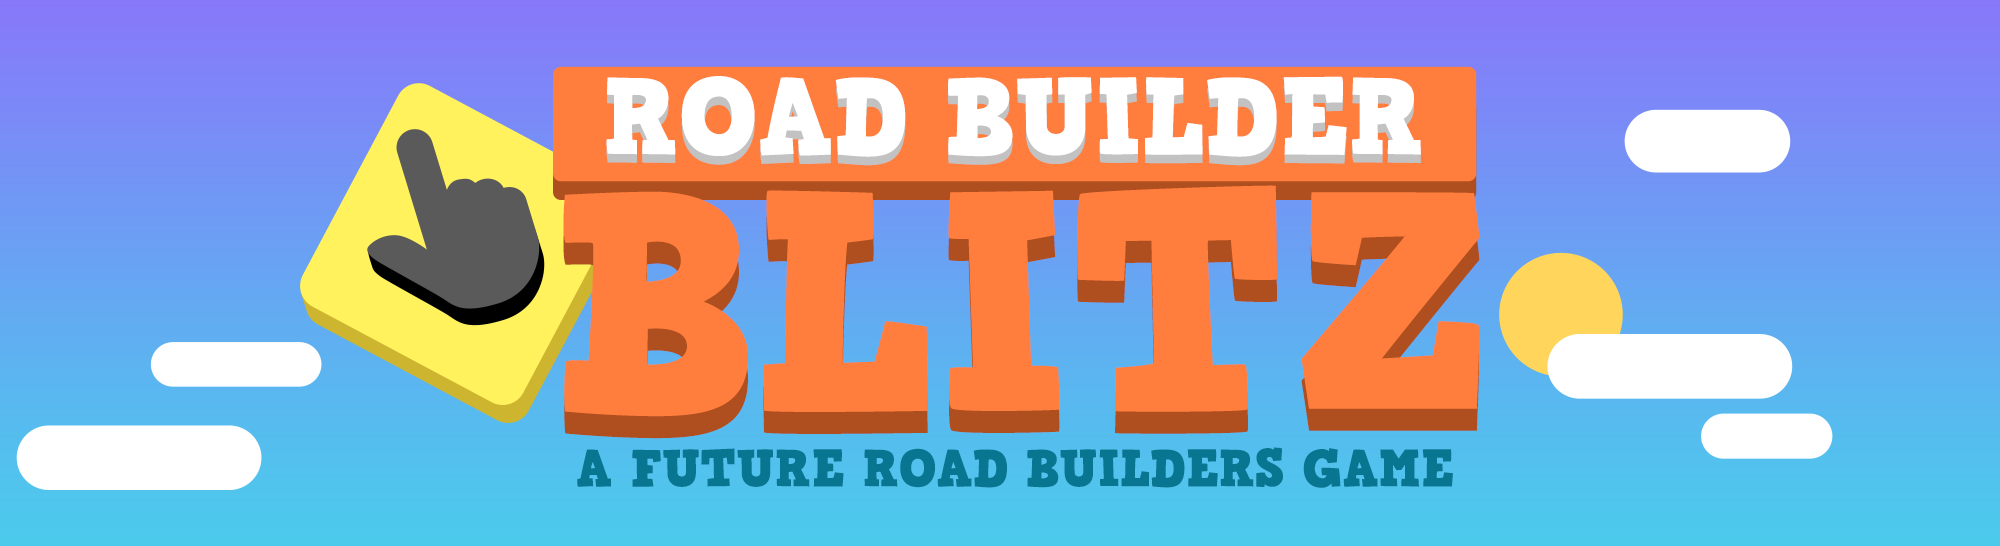 road builder blitz a future road builders game